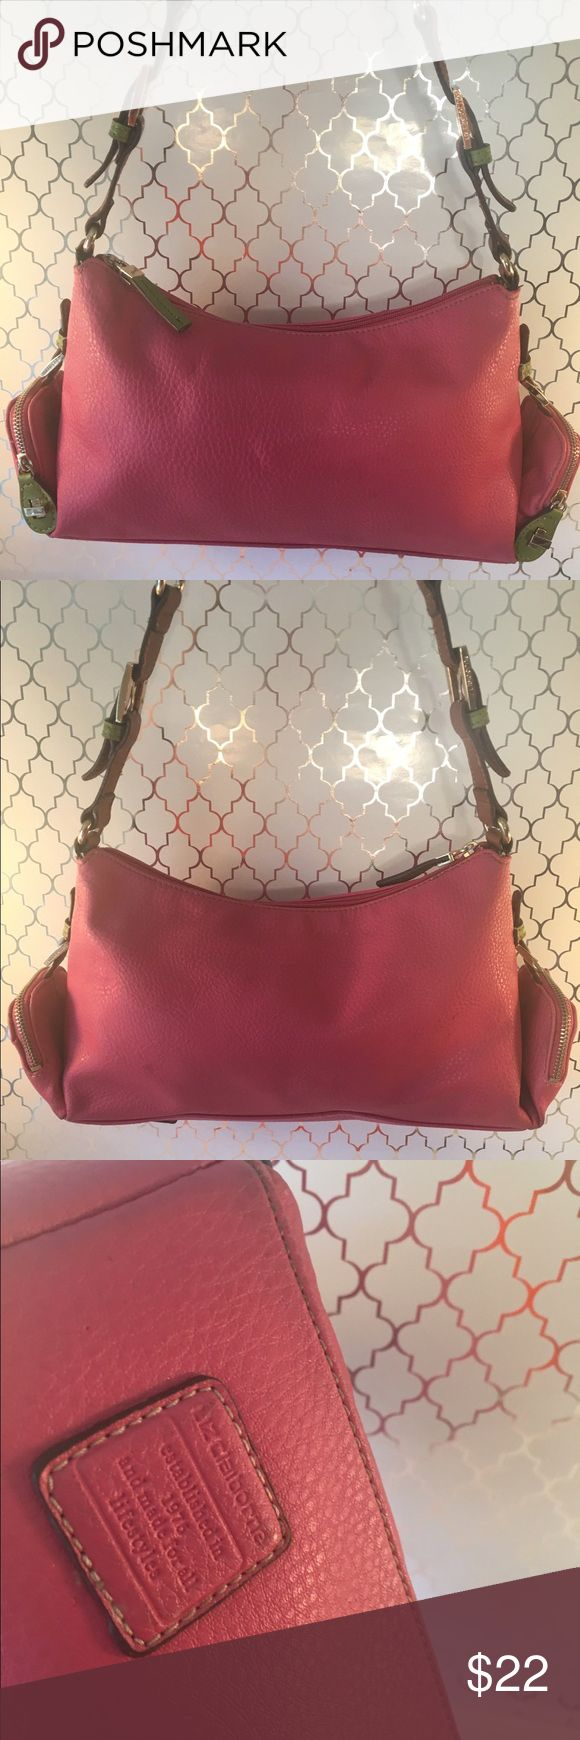 ⭐️LIZ CLAIBORNE PINK SHOULDER BAG 💯AUTHENTIC LIZ CLAIBORNE PRETTY PINK SHOULDER BAG 100% AUTHENTIC. PERFECT FOR ANY OCCASION! THIS GREAT BAG HAS THREE LOVELY INTERIOR WALL POCKETS. THE BAG MEASURES 14 INCHES WIDE BY NEARLY 8 INCHES TALL. THE ADJUSTABLE SHOULDER STRAP HAS A 11 INCH DROP Liz Claiborne Bags Shoulder Bags